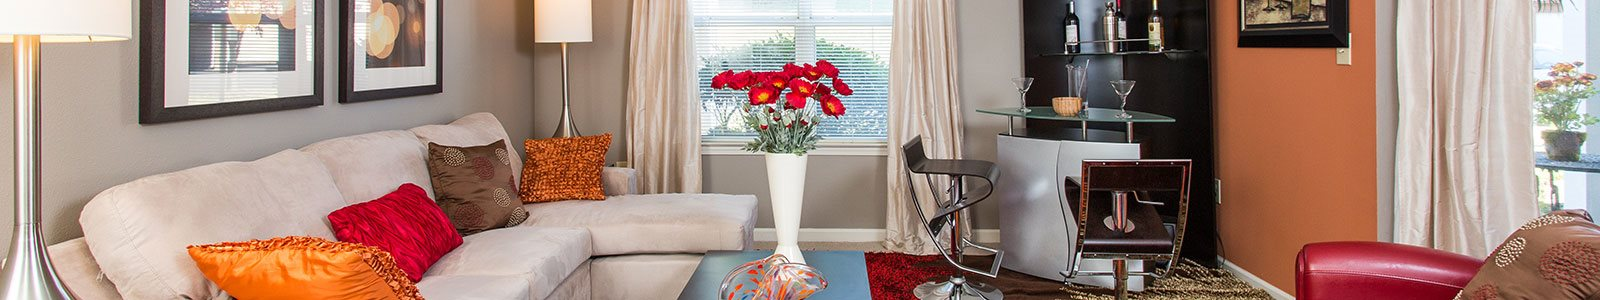 Brand New Interiors at Sunscape Apartments, Virginia